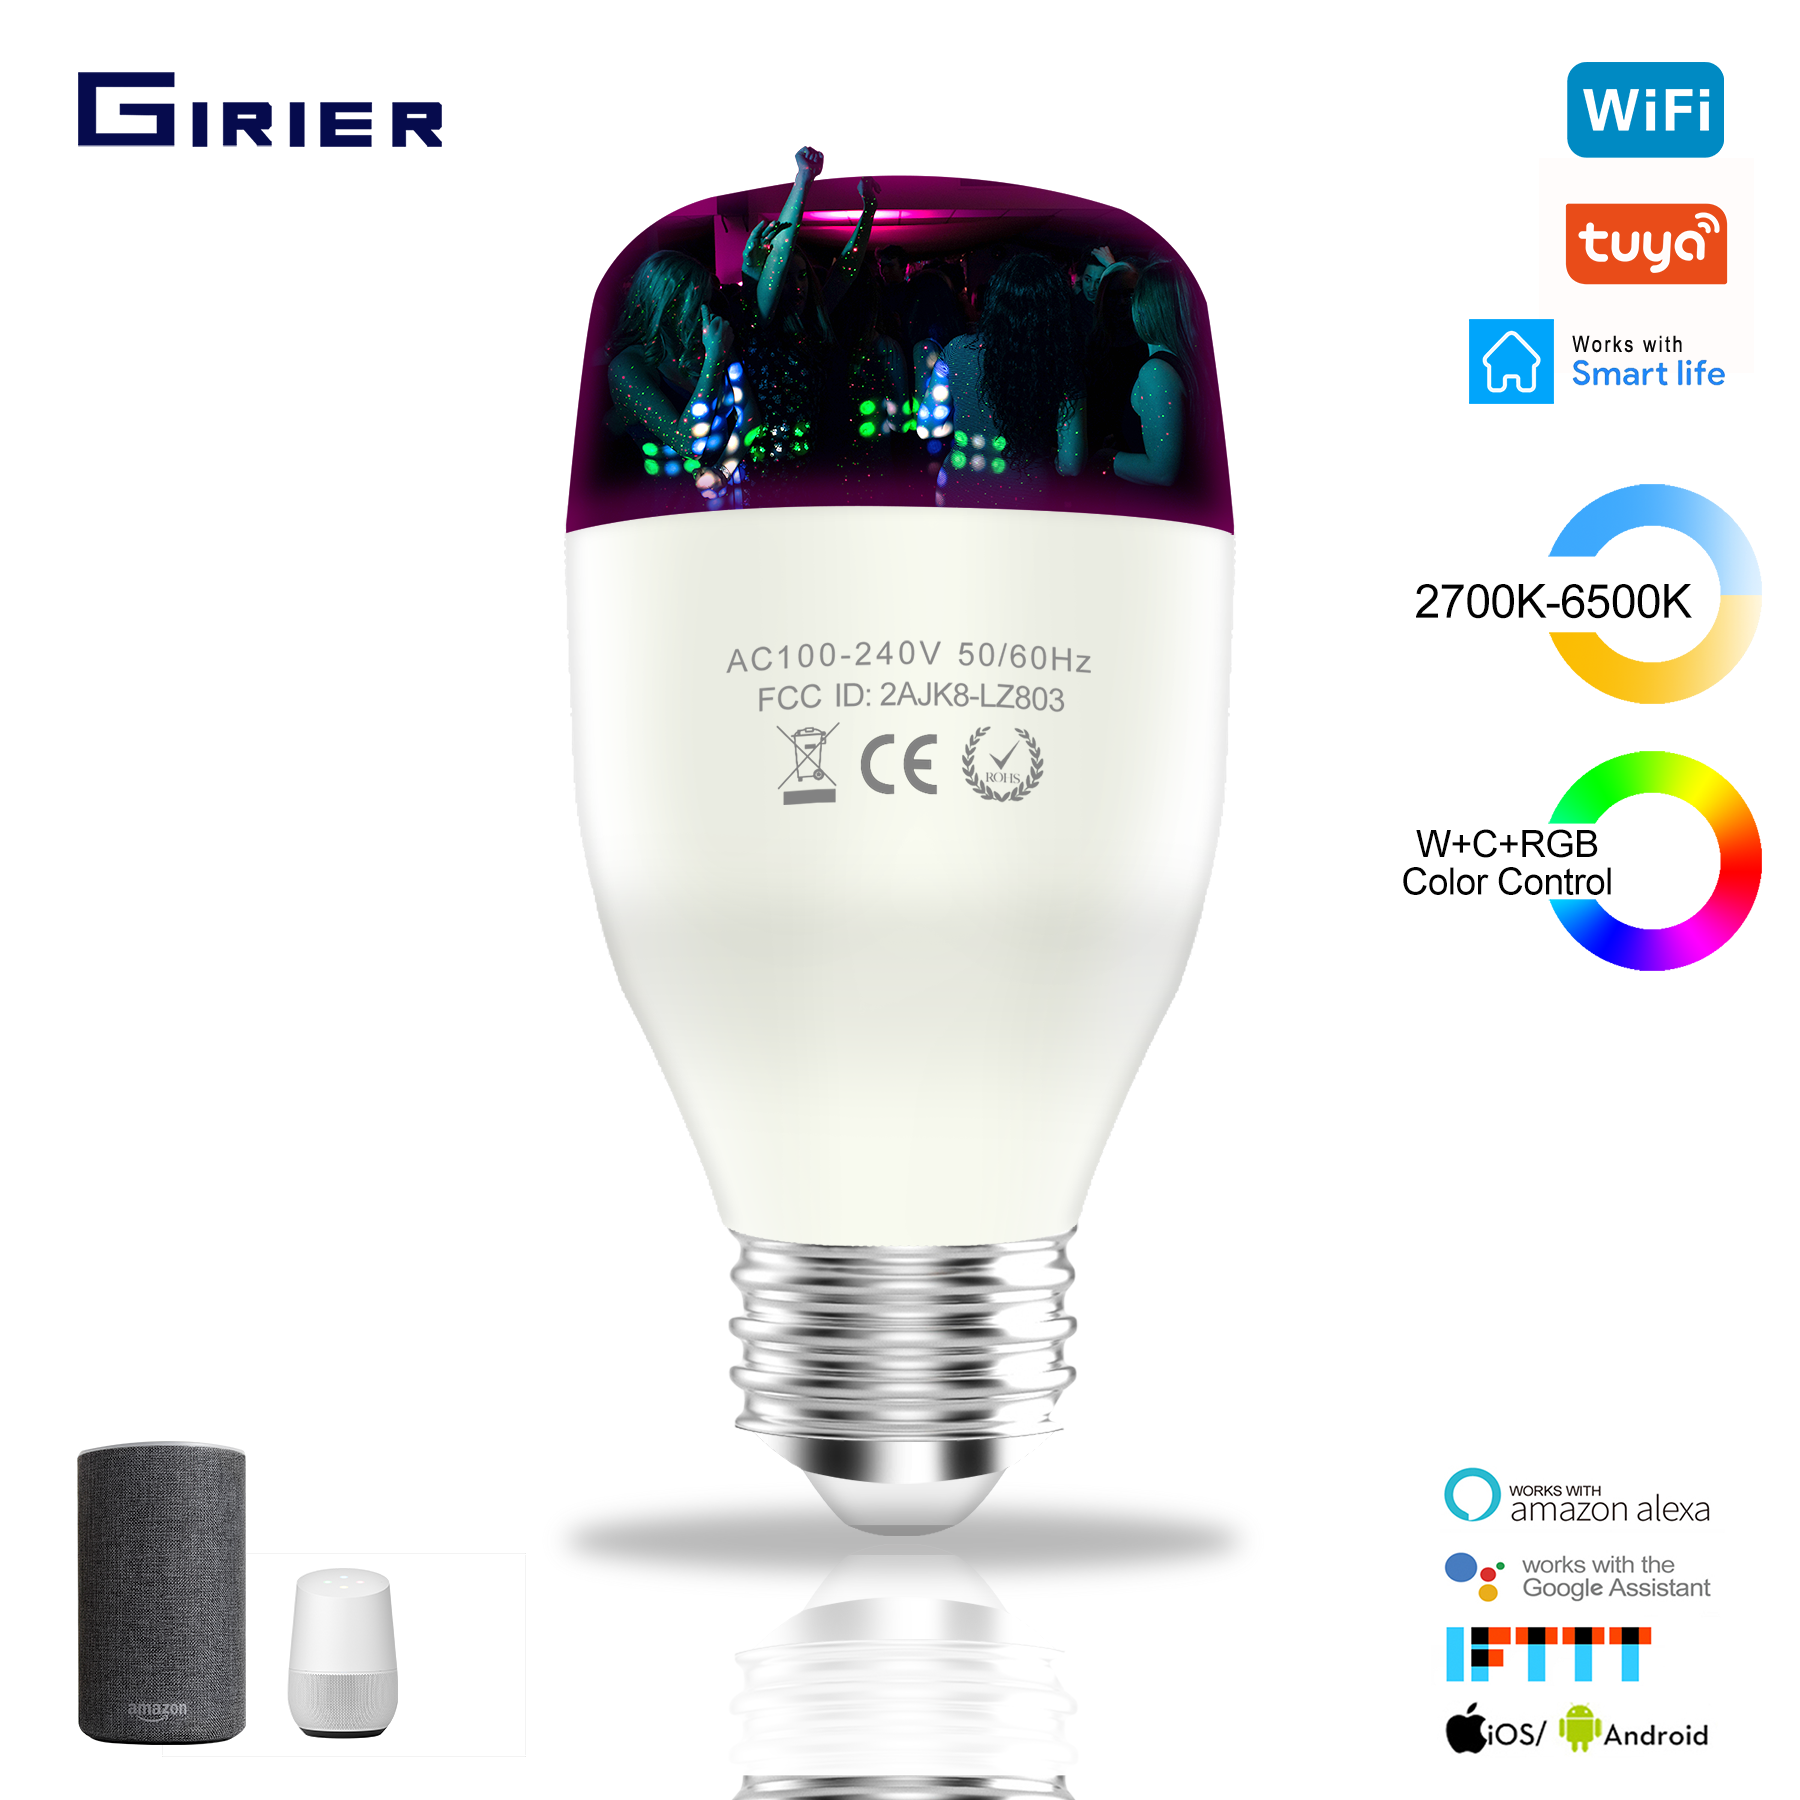 E26/27 Smart Wifi LED Bulb 7/9W WCRGB Tuya Smart Dimmable Lamp Bulb Color Changing With Music Compatible With Alexa Google Home